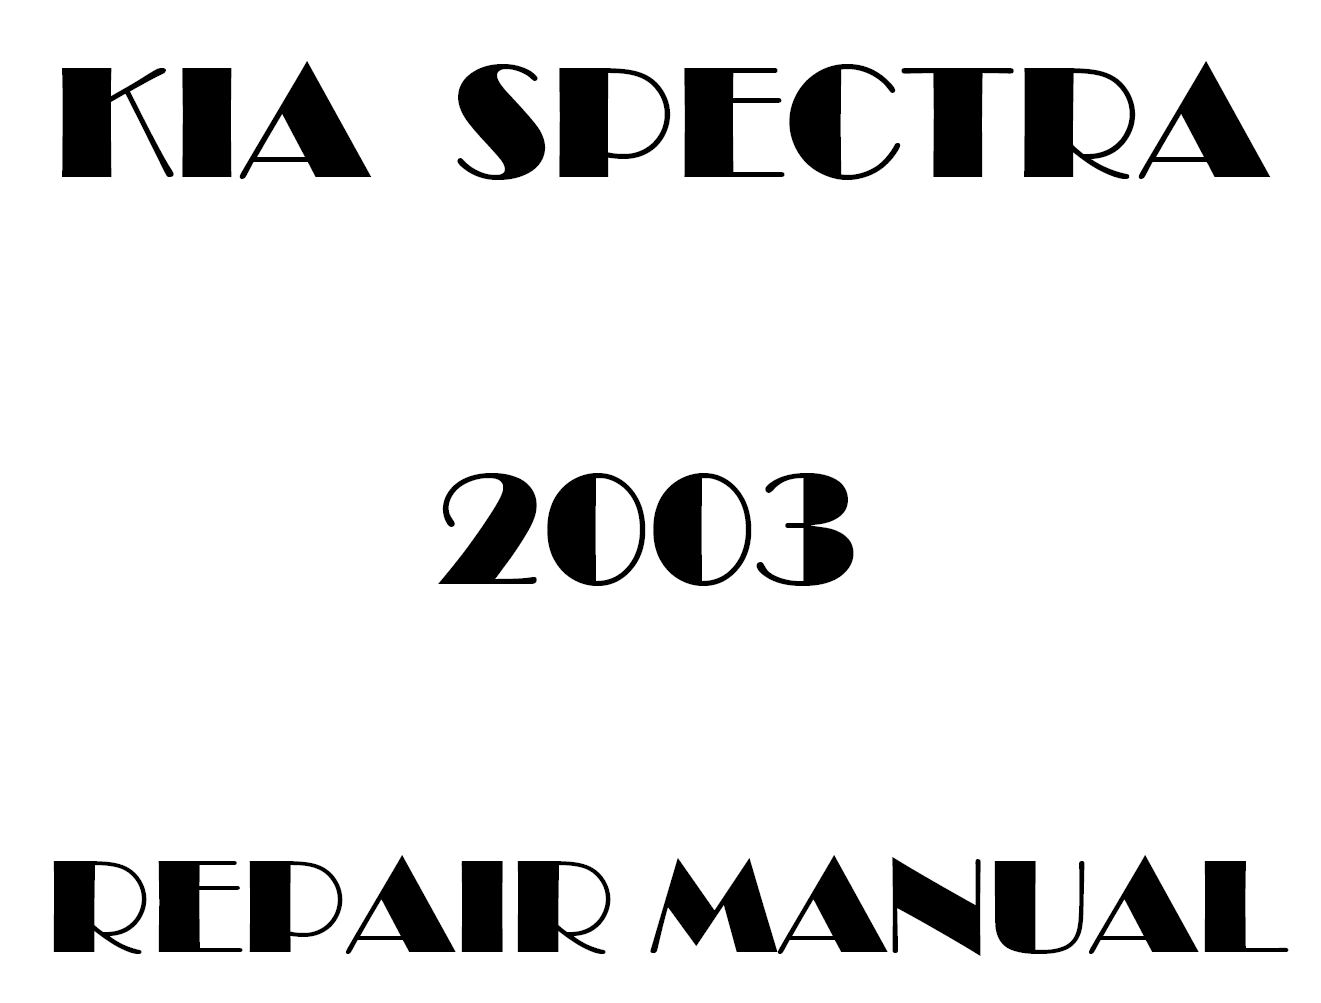 2003 Kia Spectra repair manual